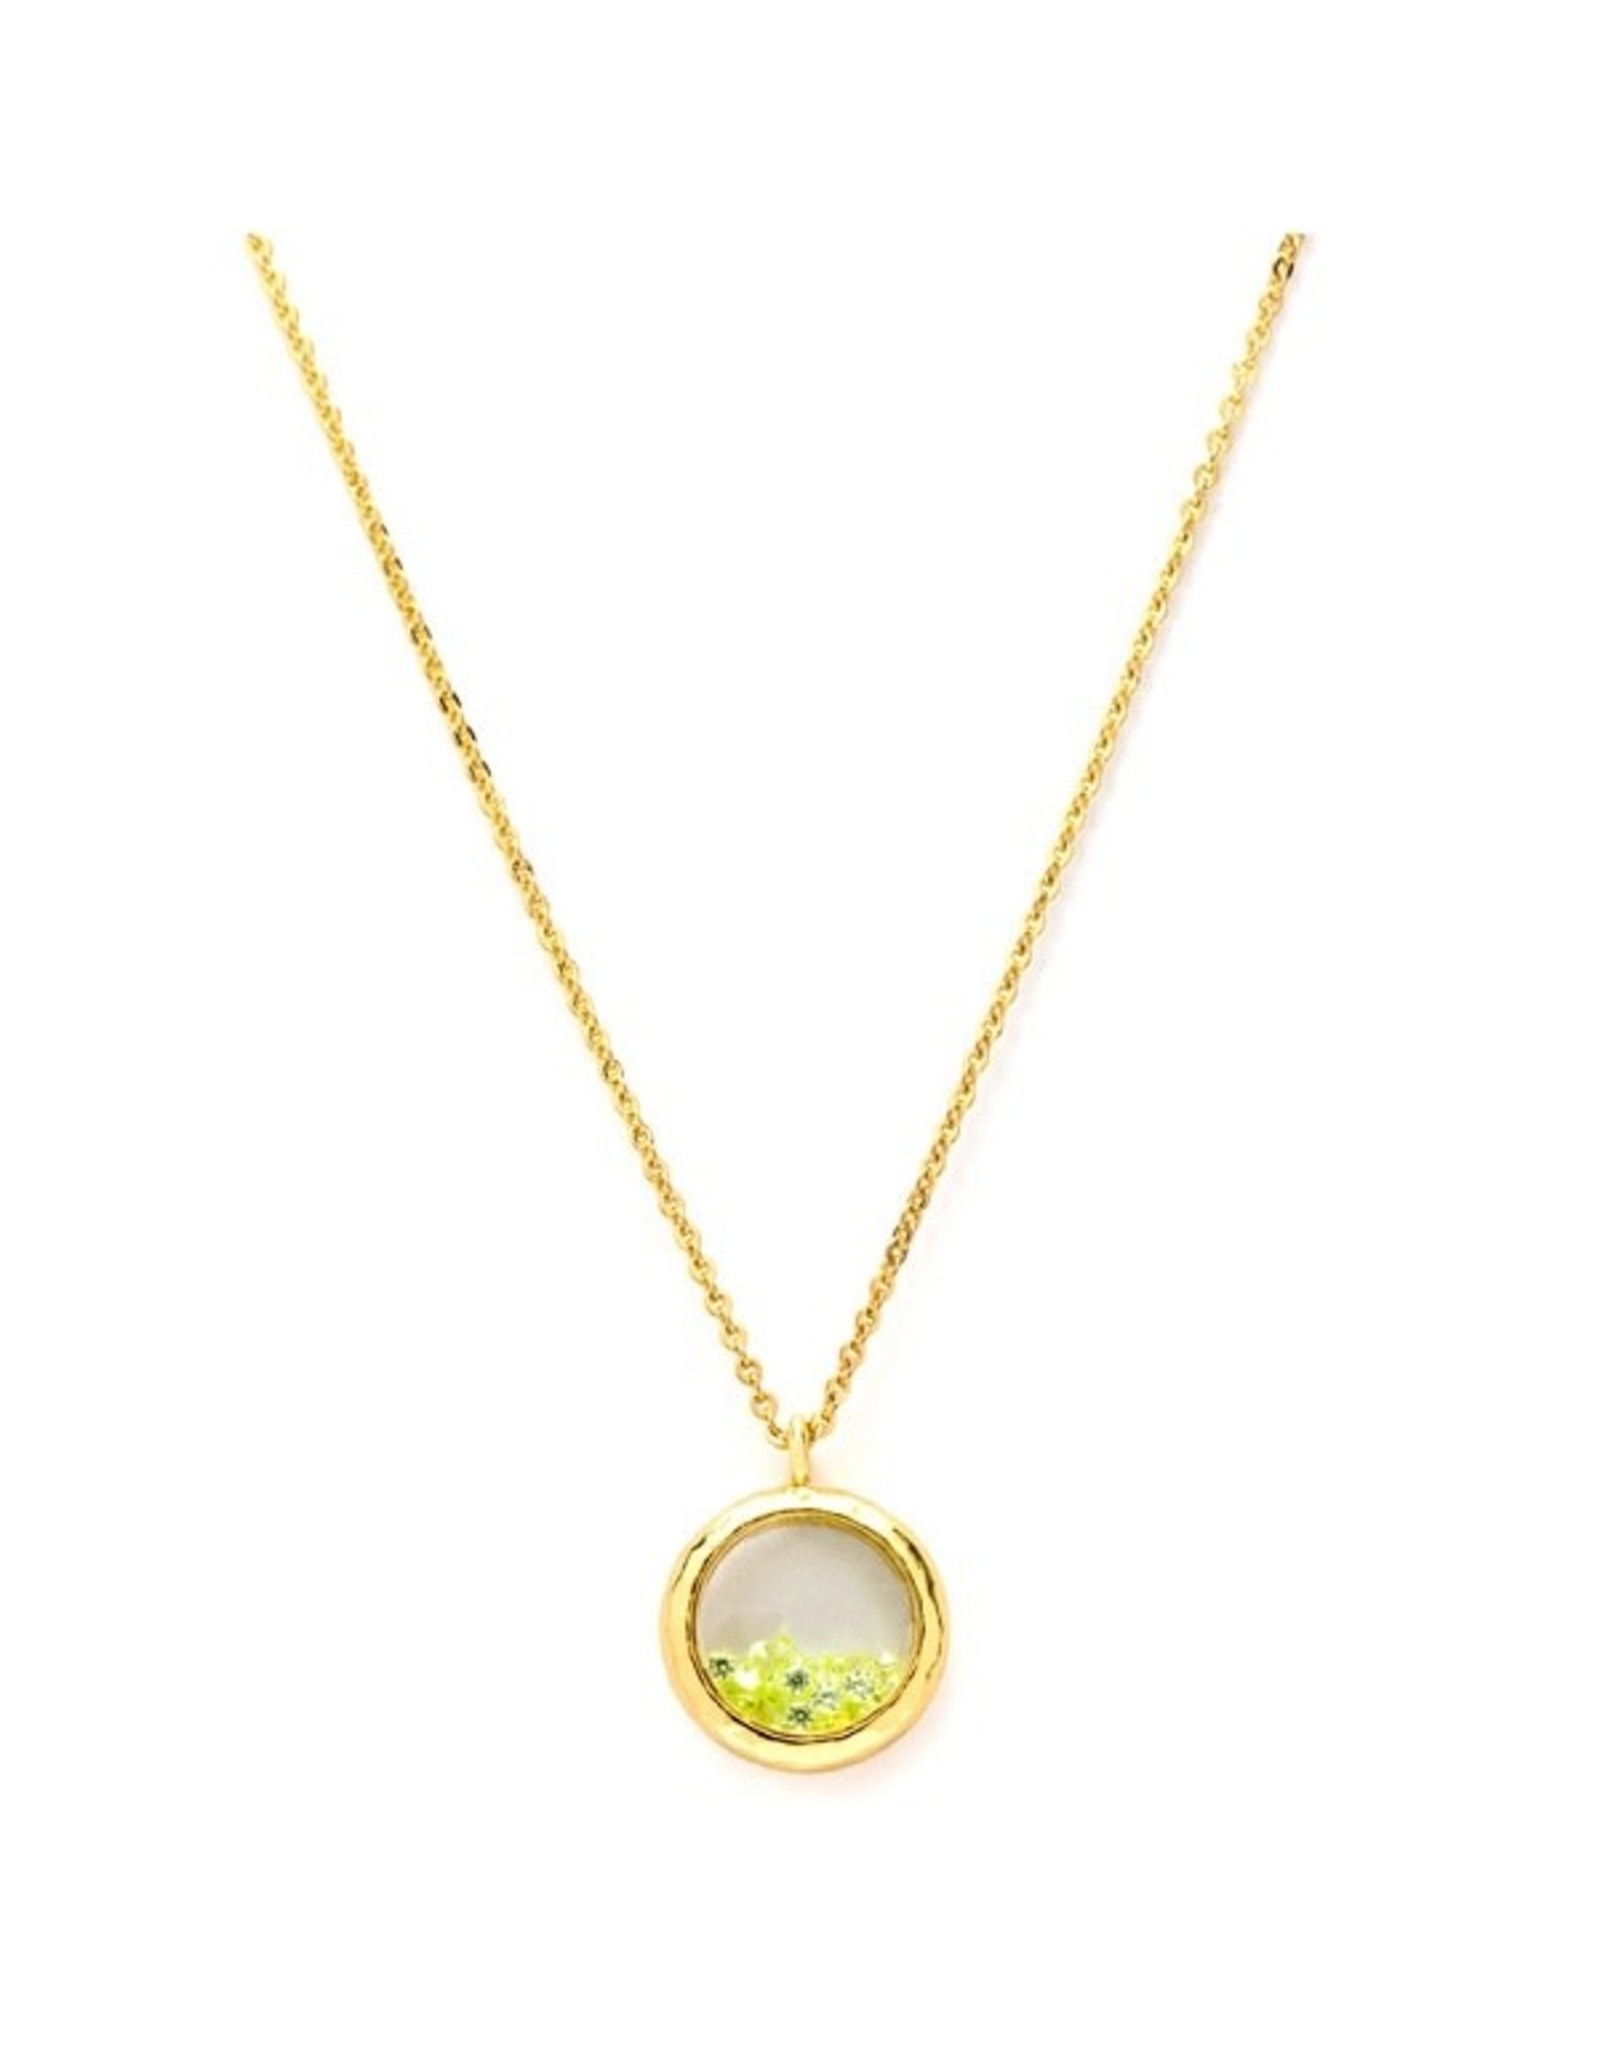 Laura Janelle BIRTHSTONE GOLD NECKLACE